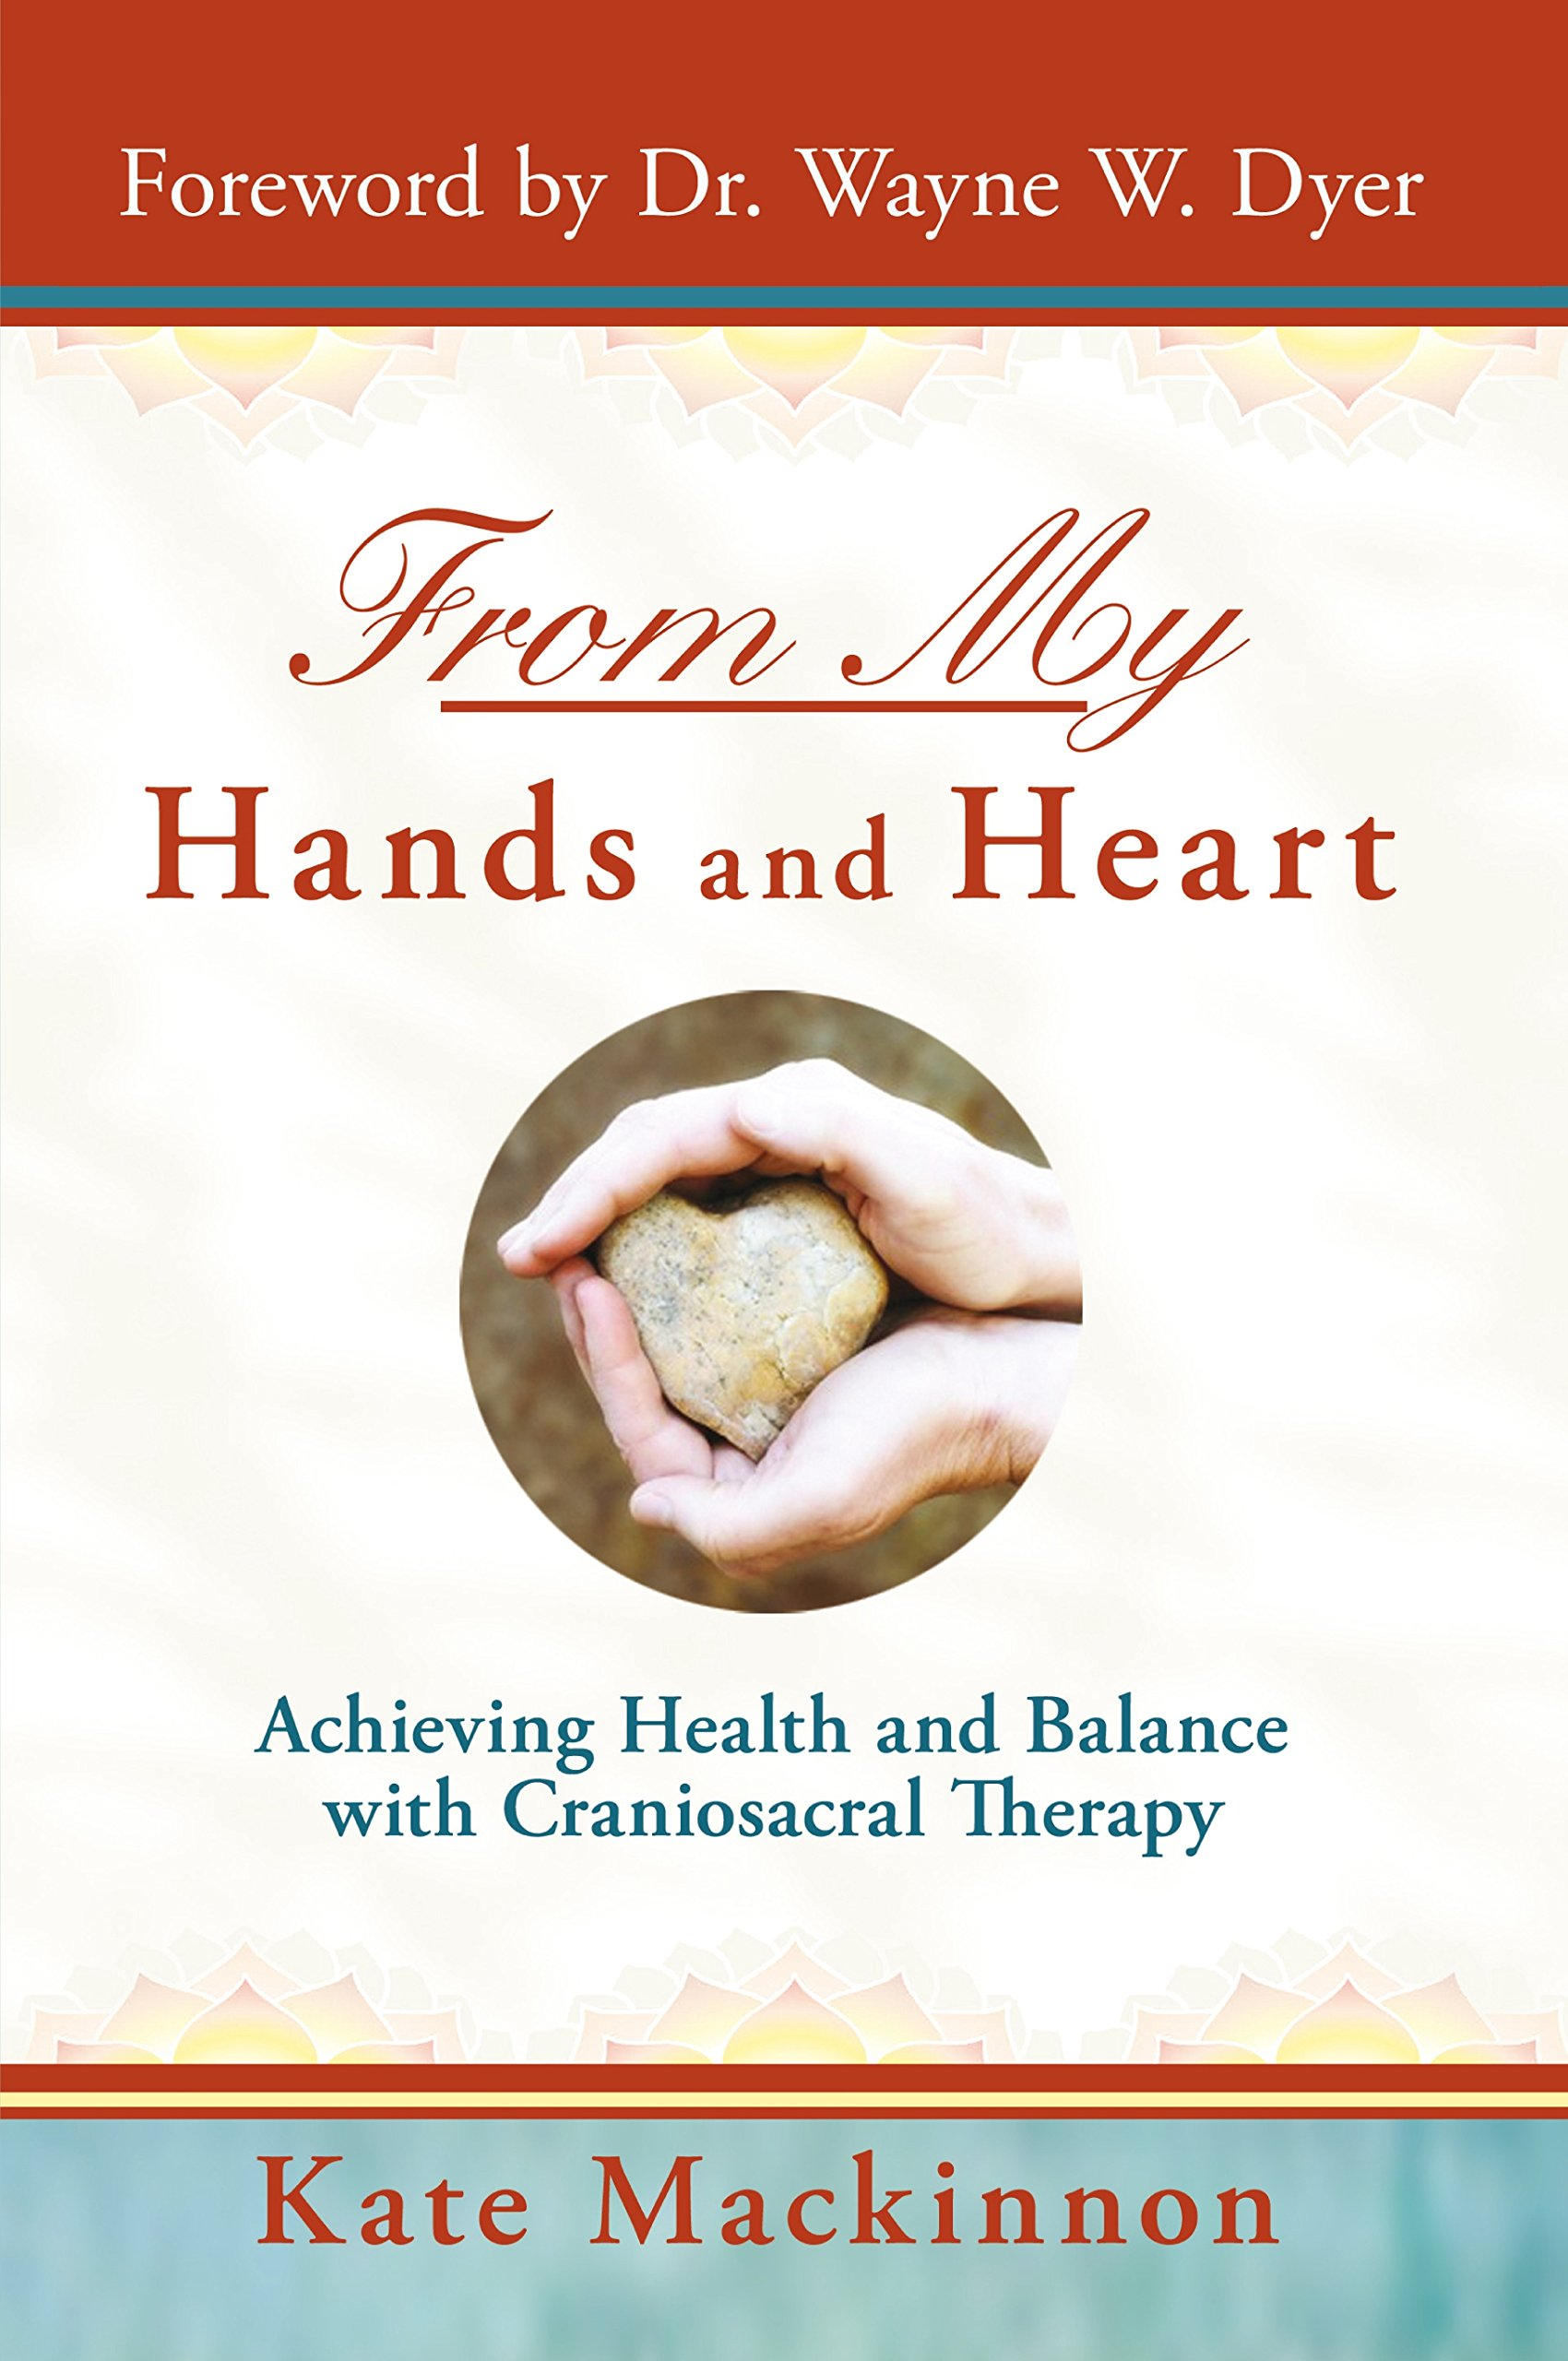 Amazon Balance Cuisine | From My Hands And Heart Achieving Health And Balance With